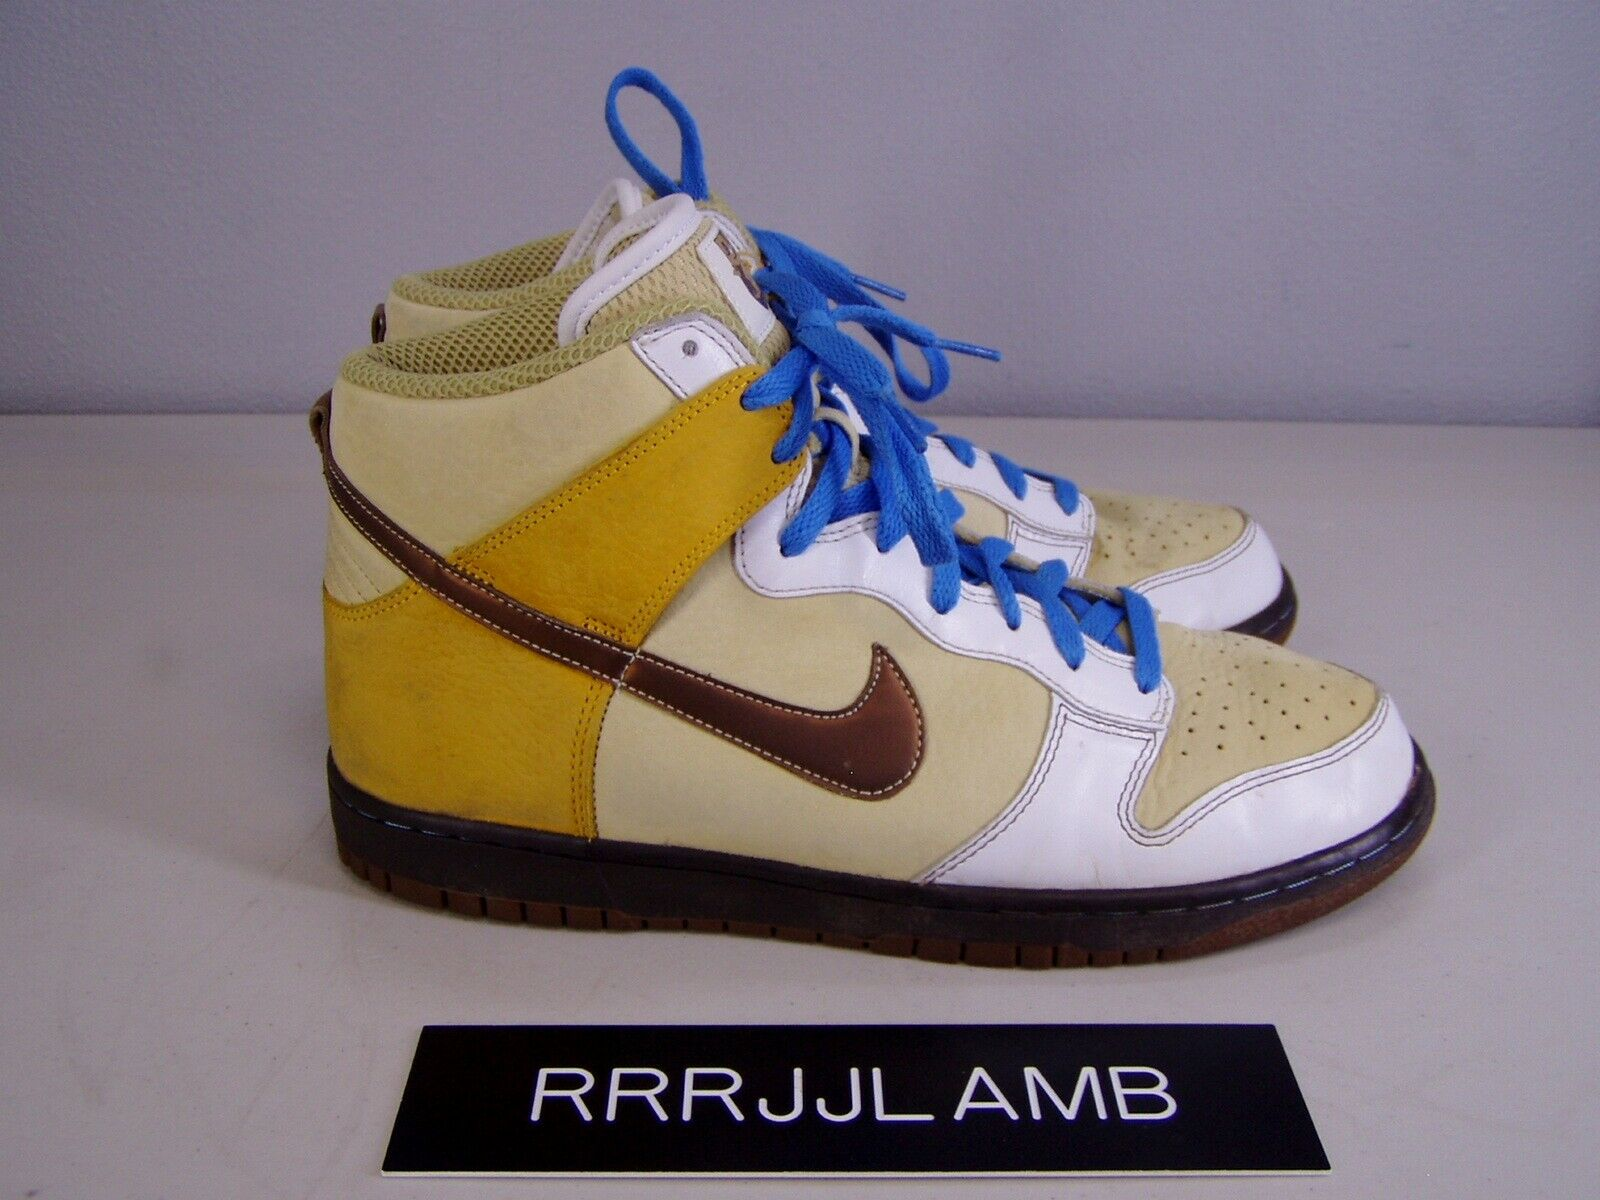 Nike Dunk High Premium Vegas gold Bison White Hi Top SHOES Mens 10.5  306968-721